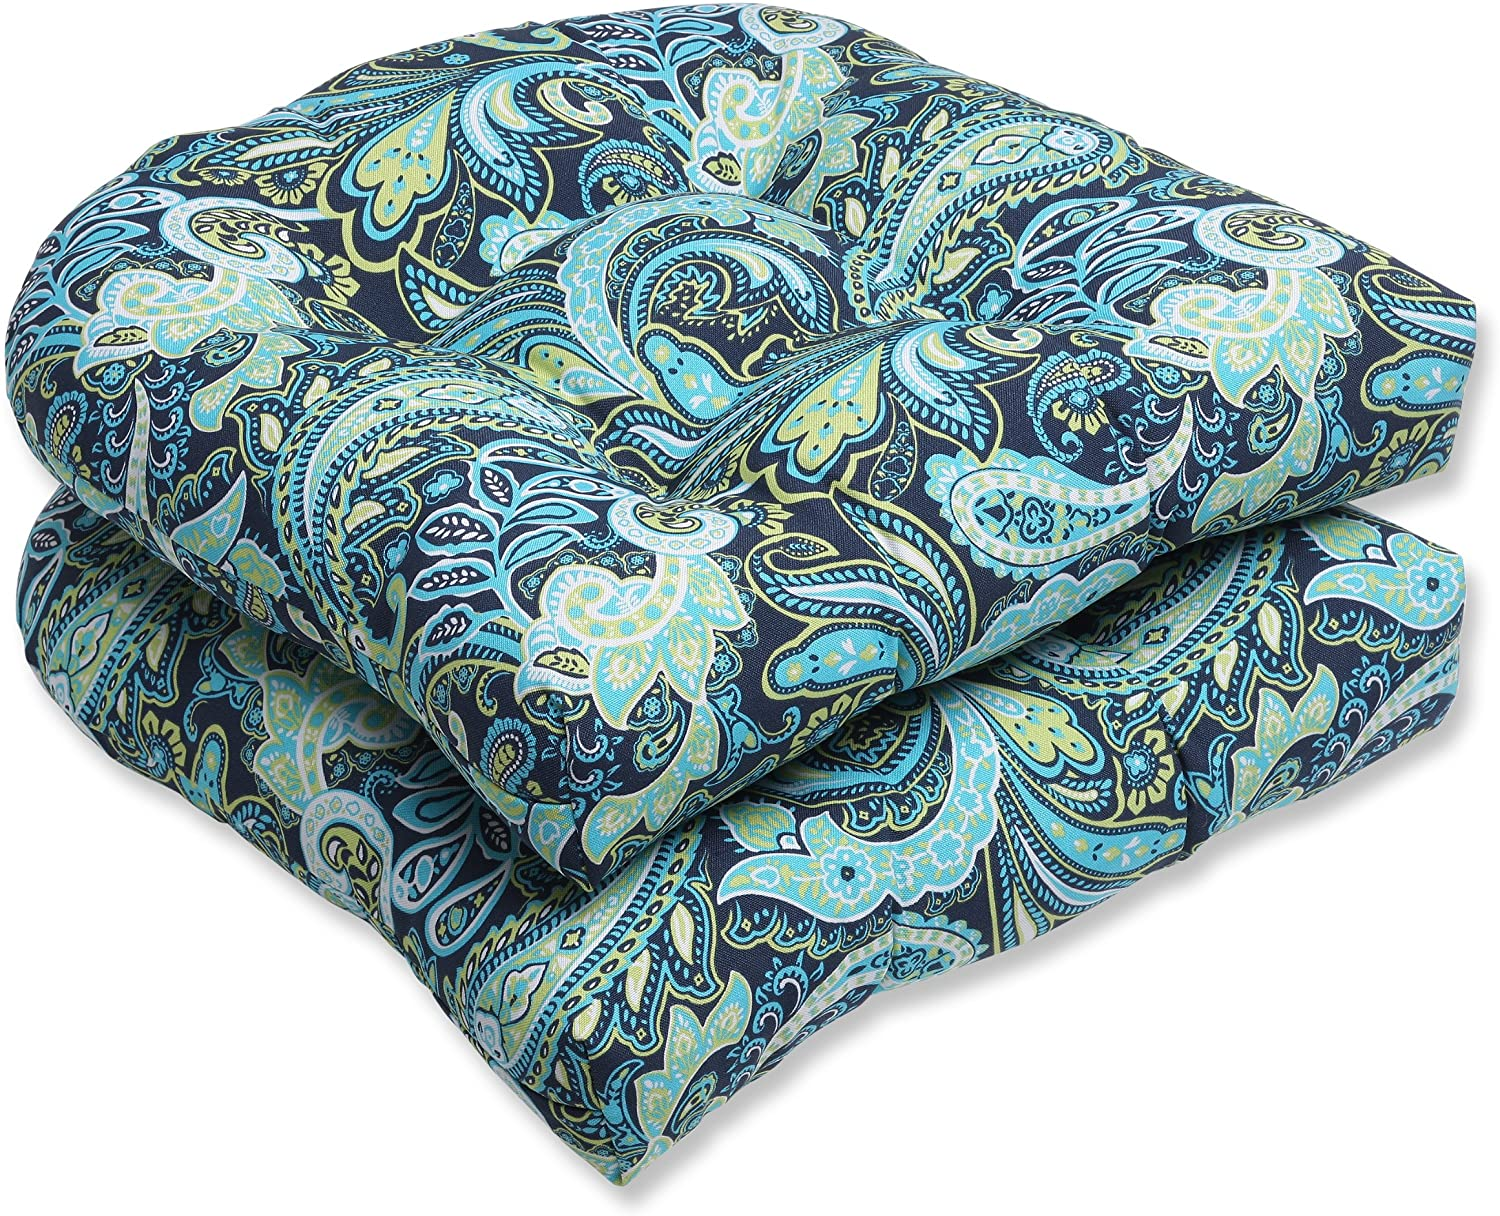 Pillow Perfect Outdoor Pretty Paisley Wicker Seat Cushion